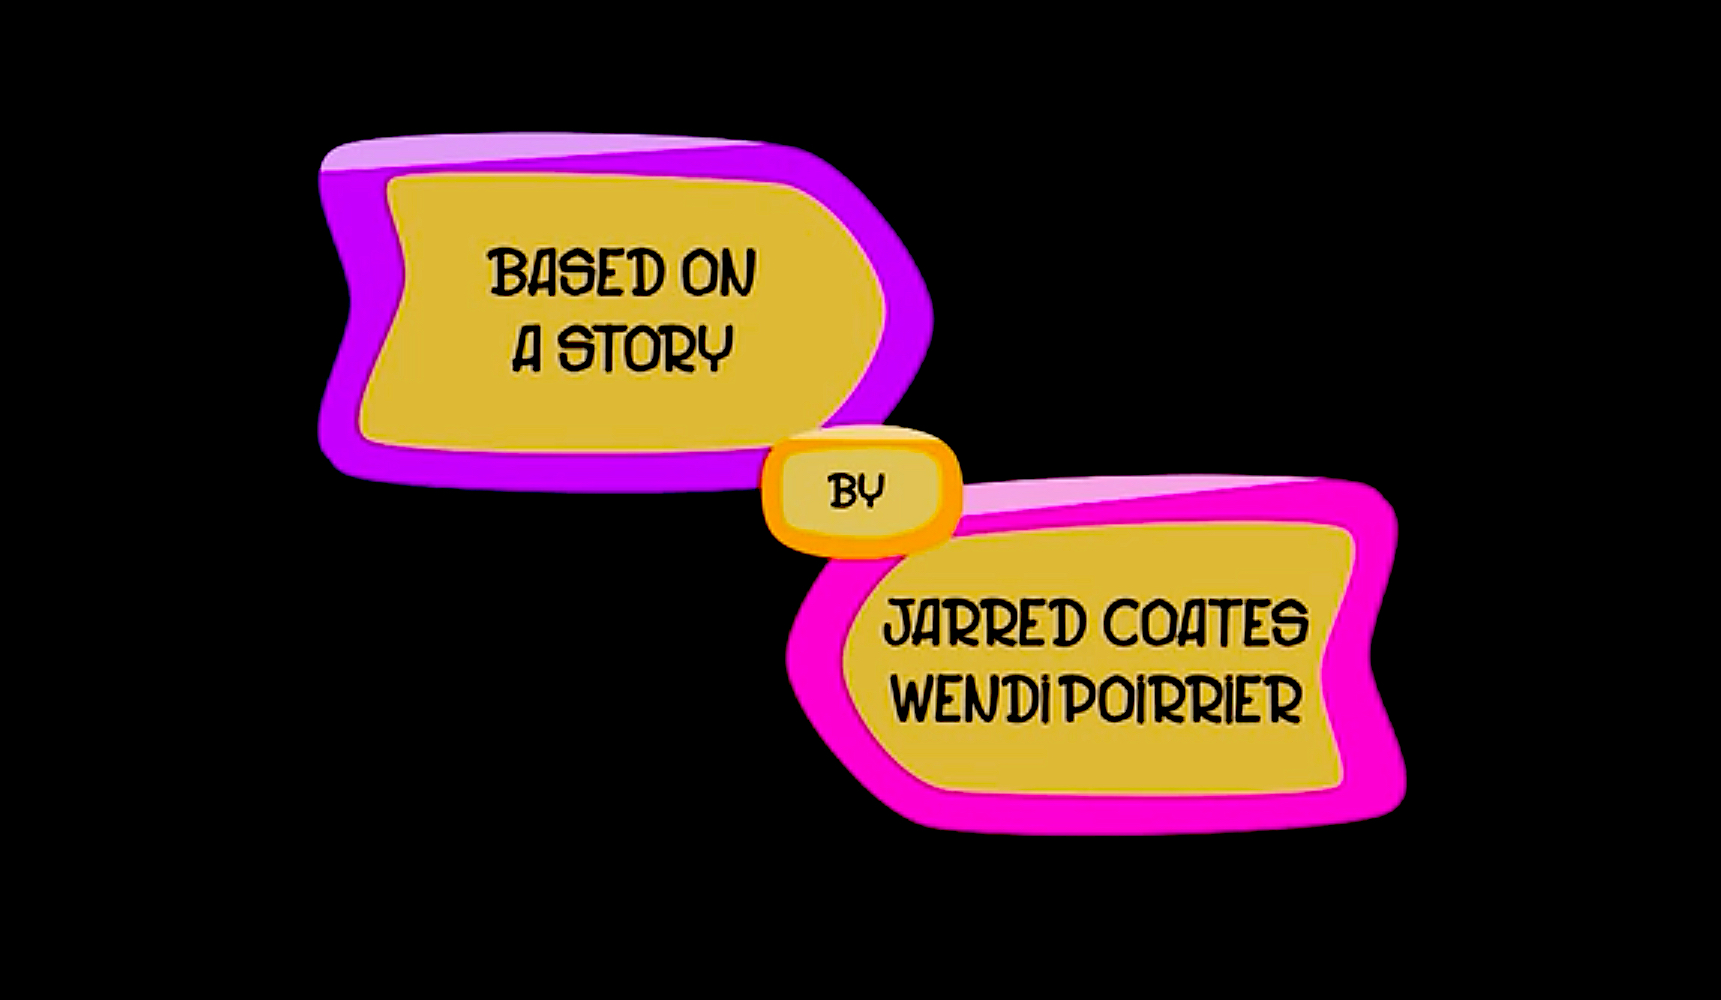 Story by Jarred Coates and Wendi Poirrier Coates